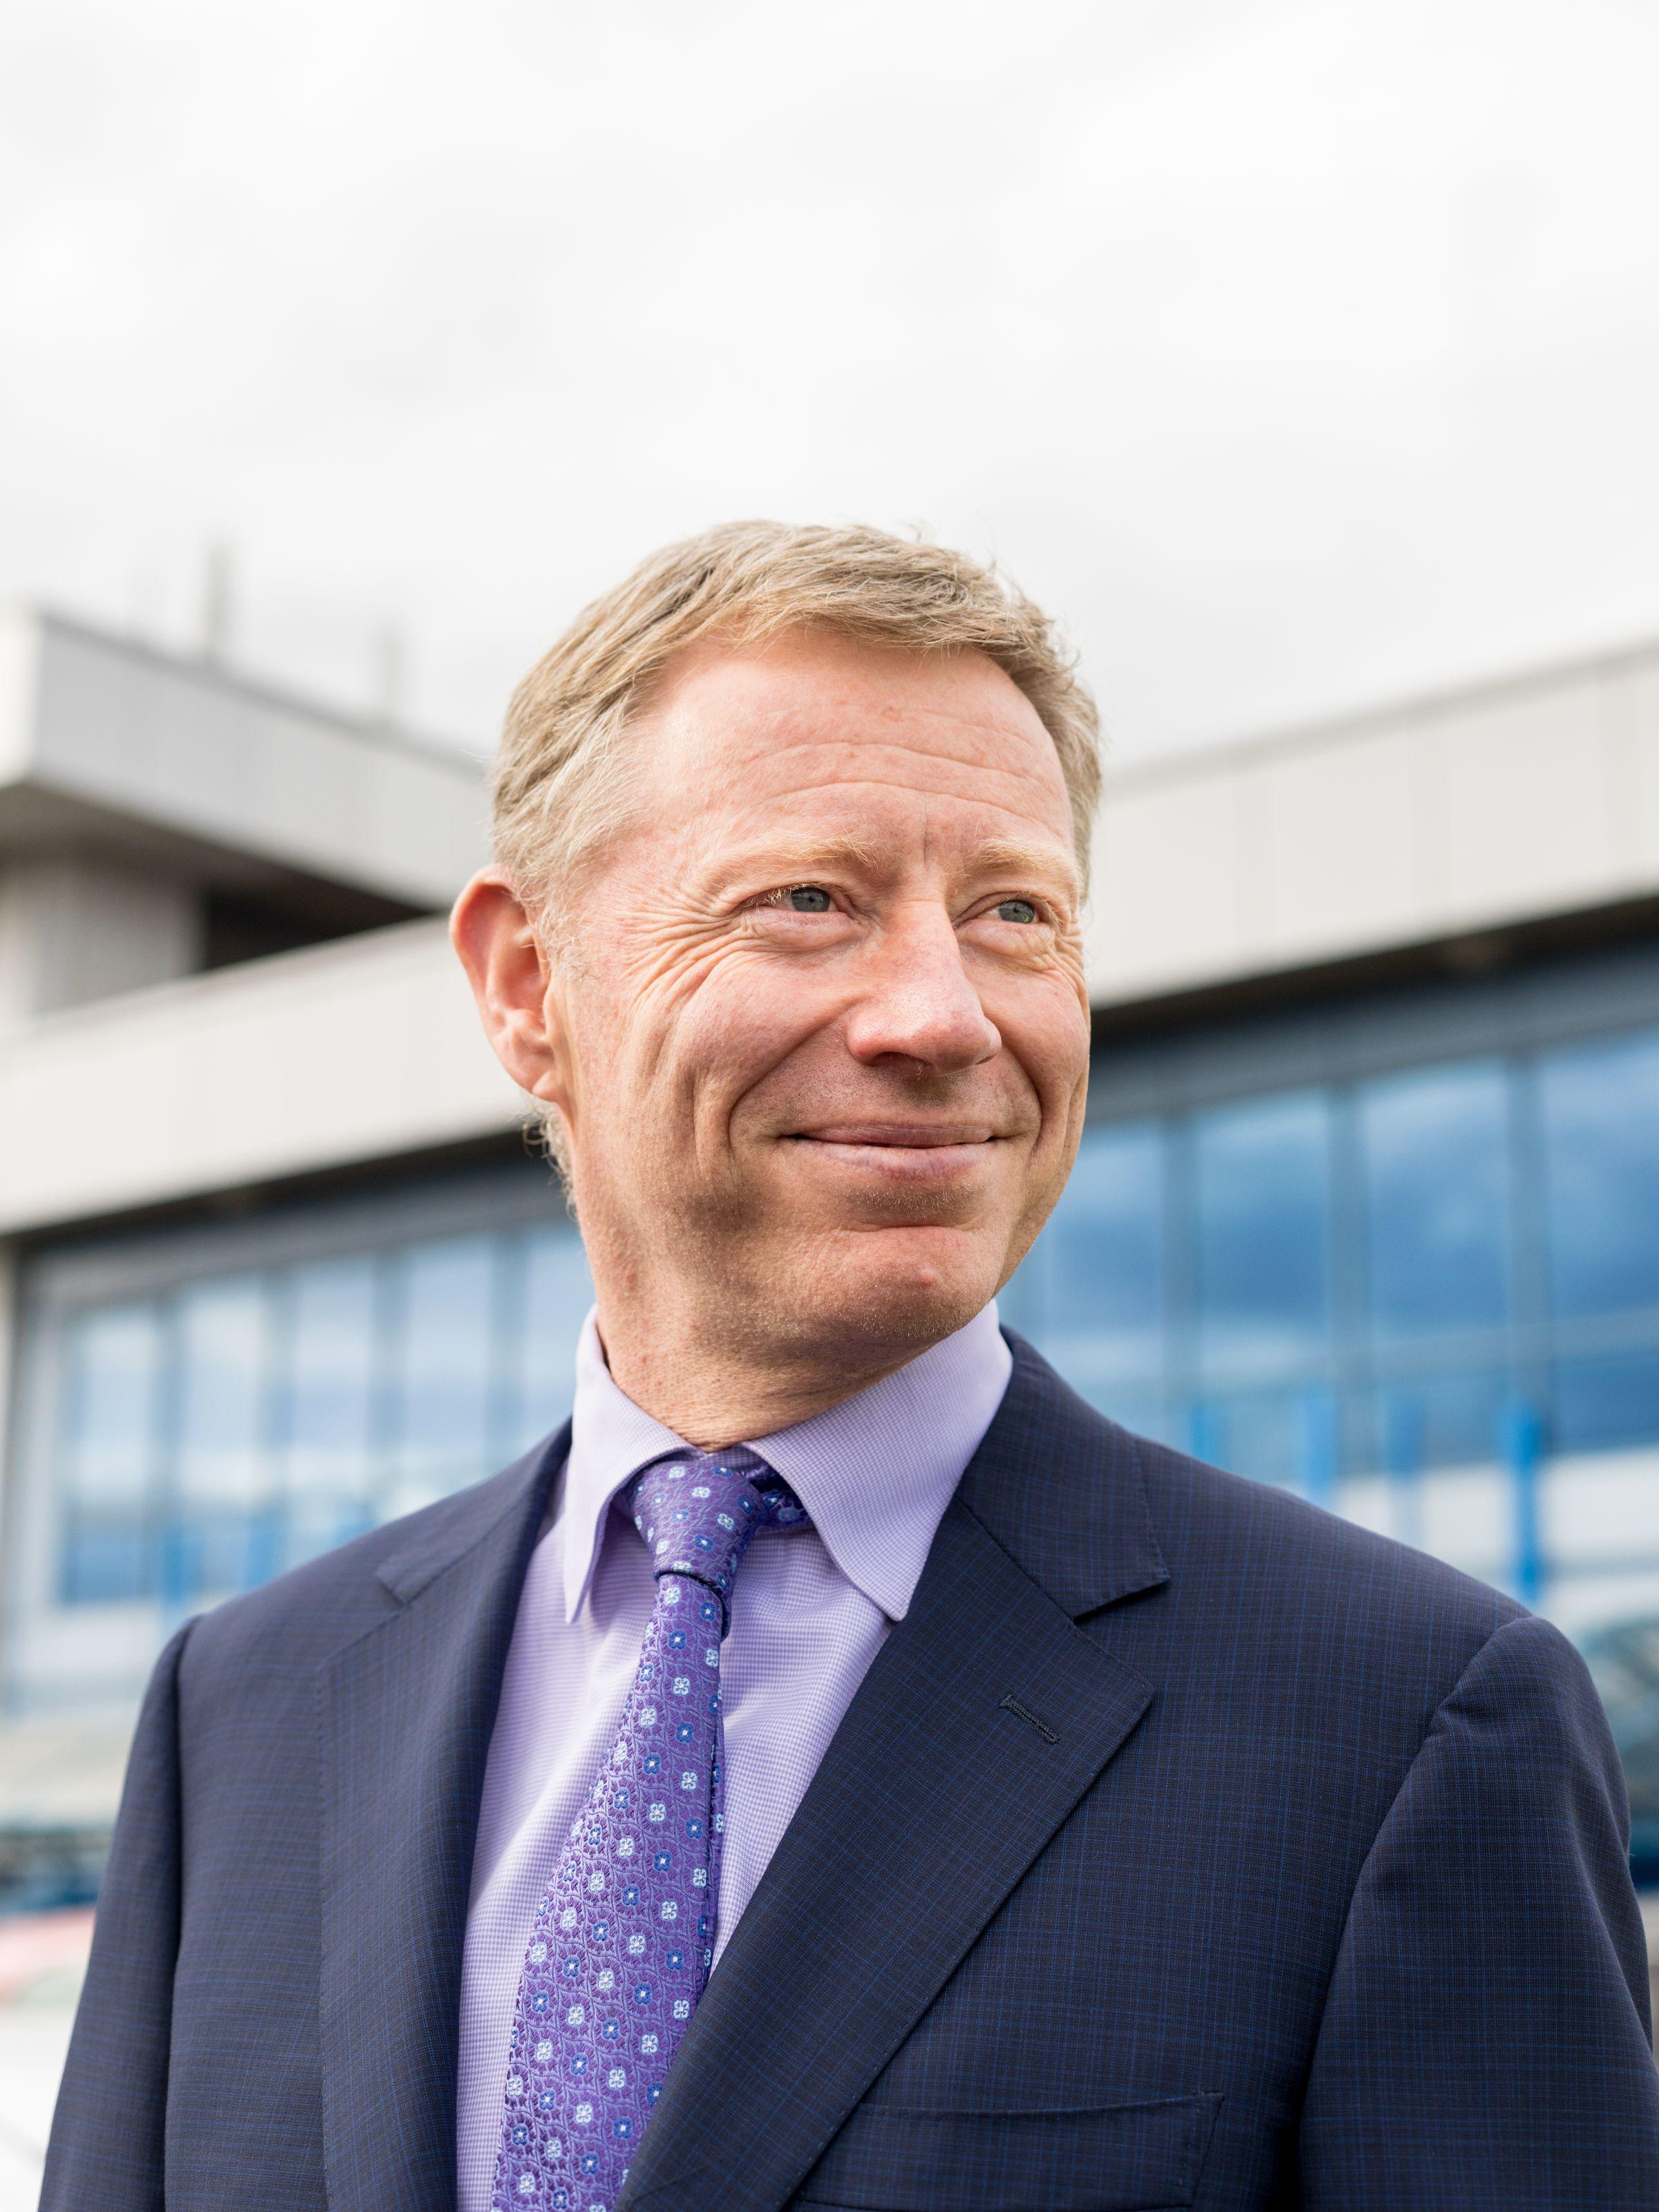 Robert Sinclair, London City Airport CEO